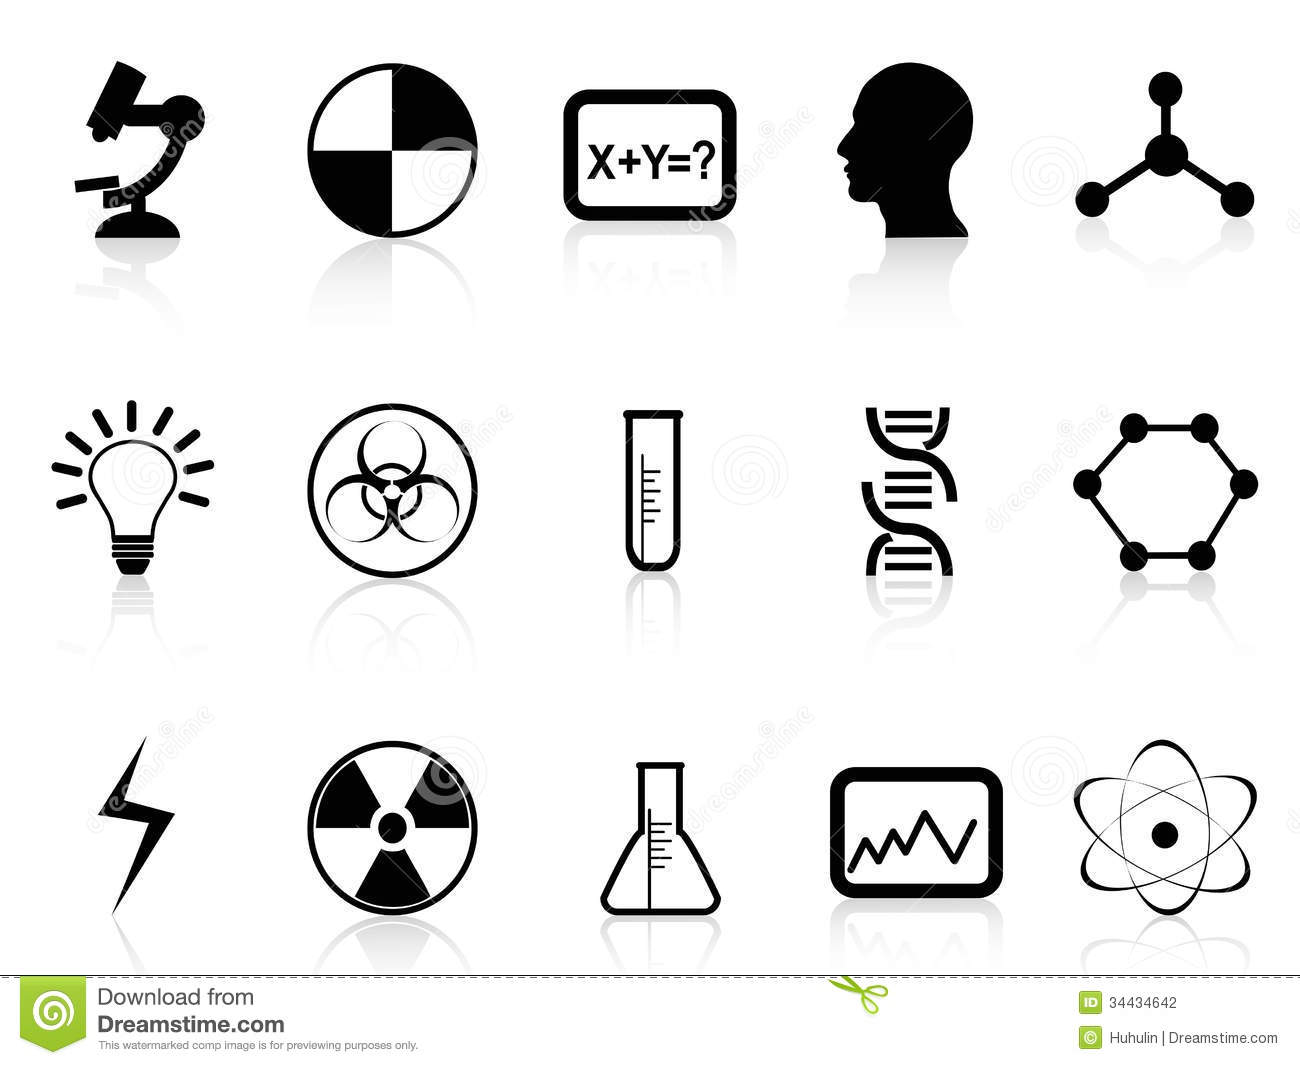 Bklack Scientist Quotes And Meanings Quotesgram